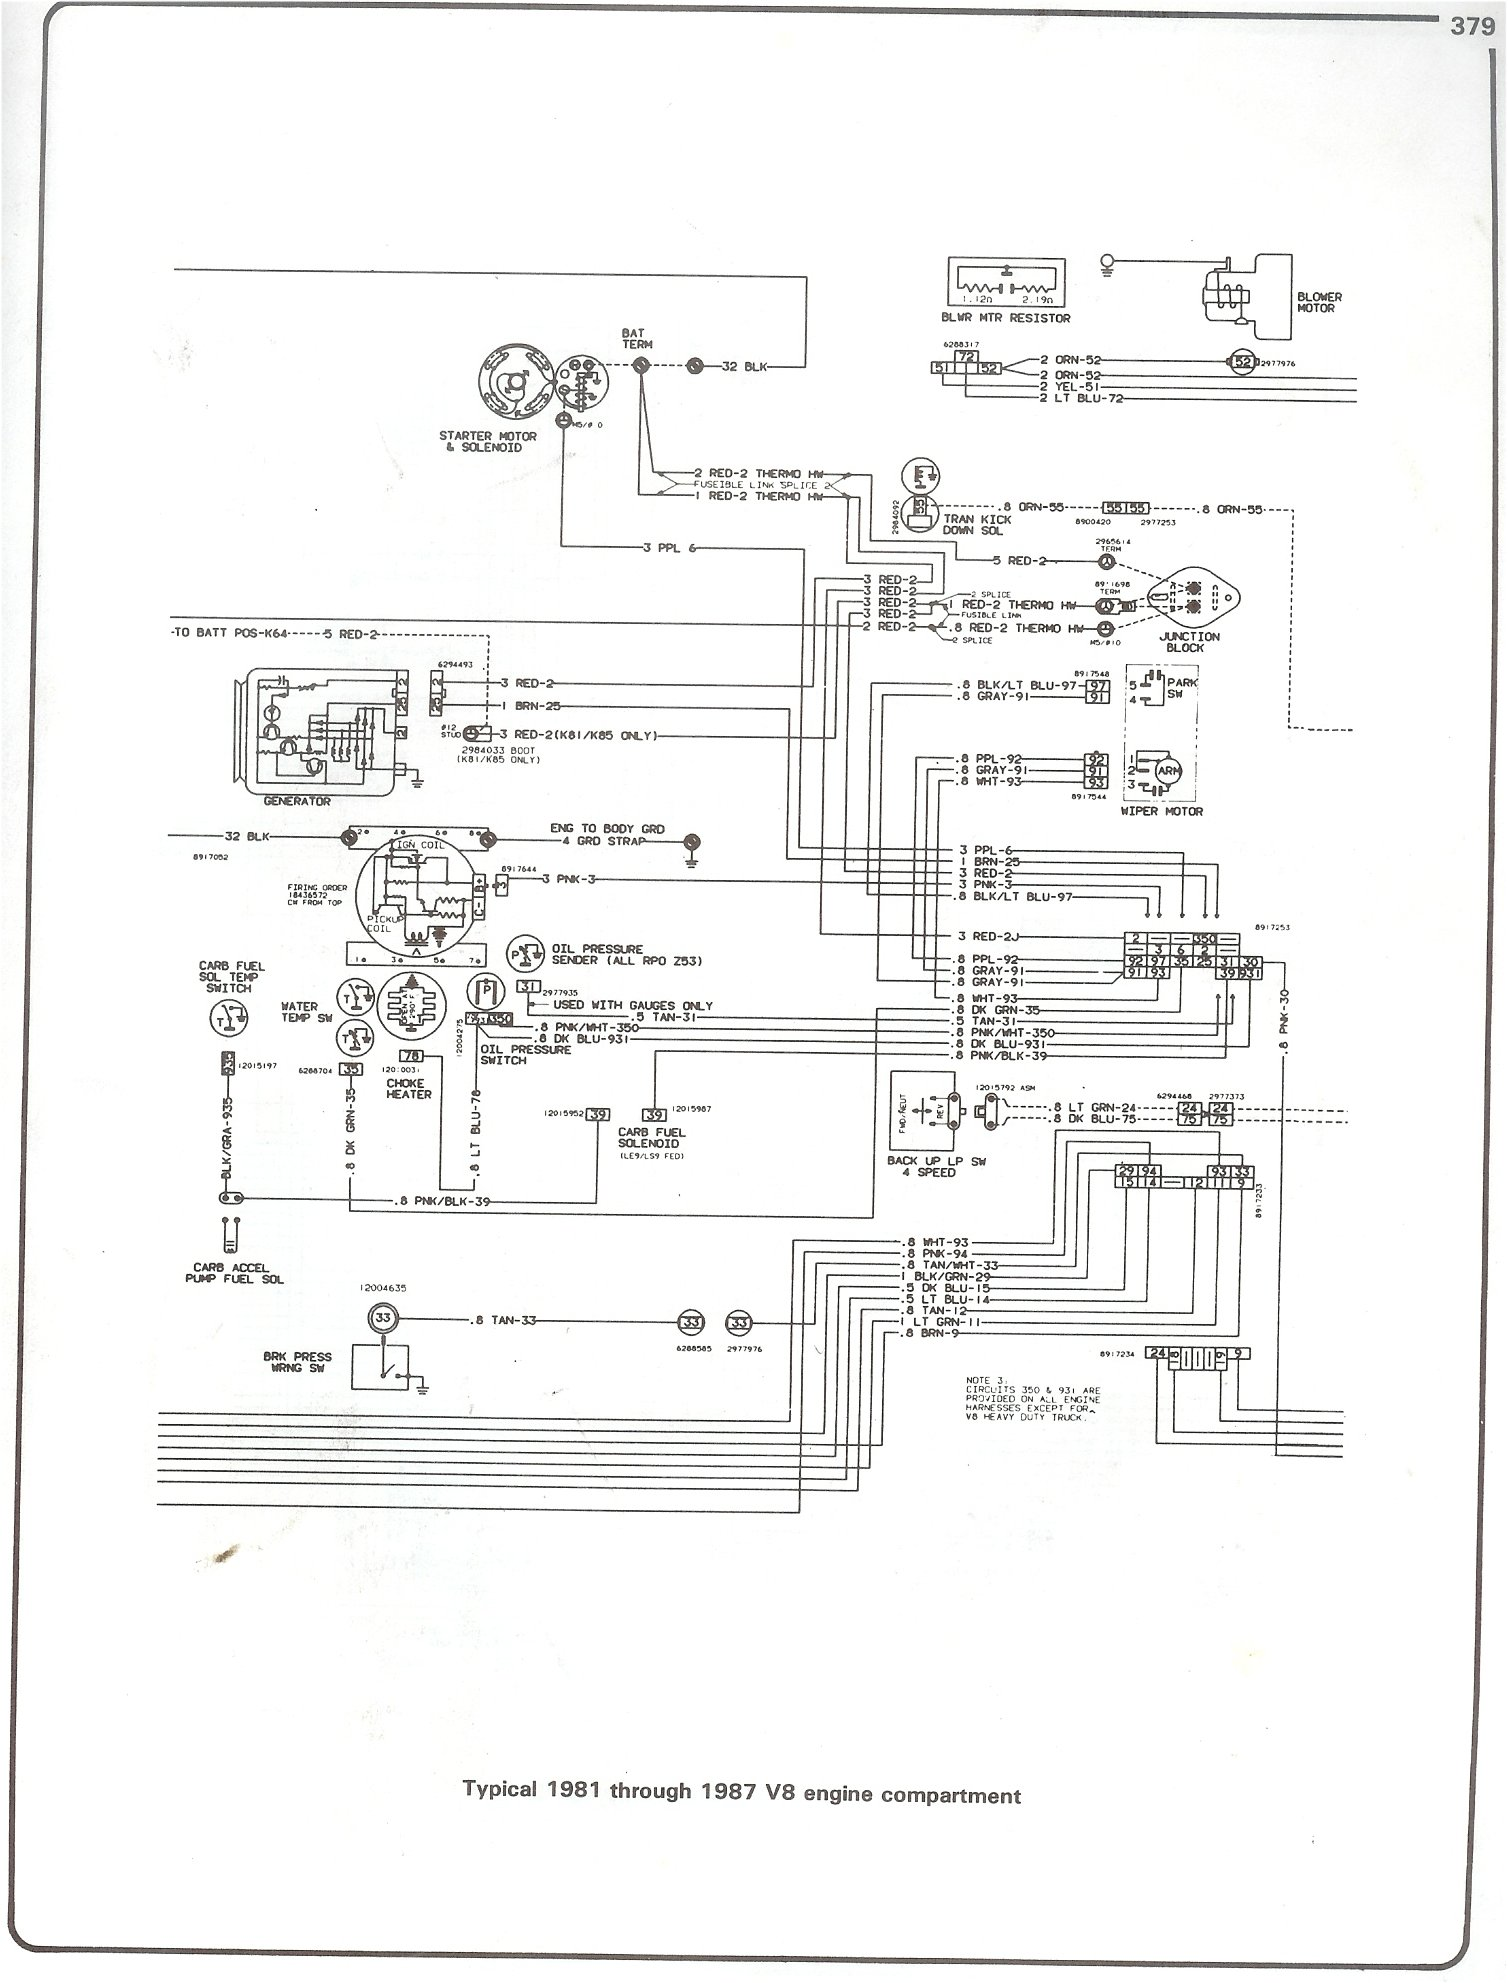 81 87_V8_engine complete 73 87 wiring diagrams  at eliteediting.co